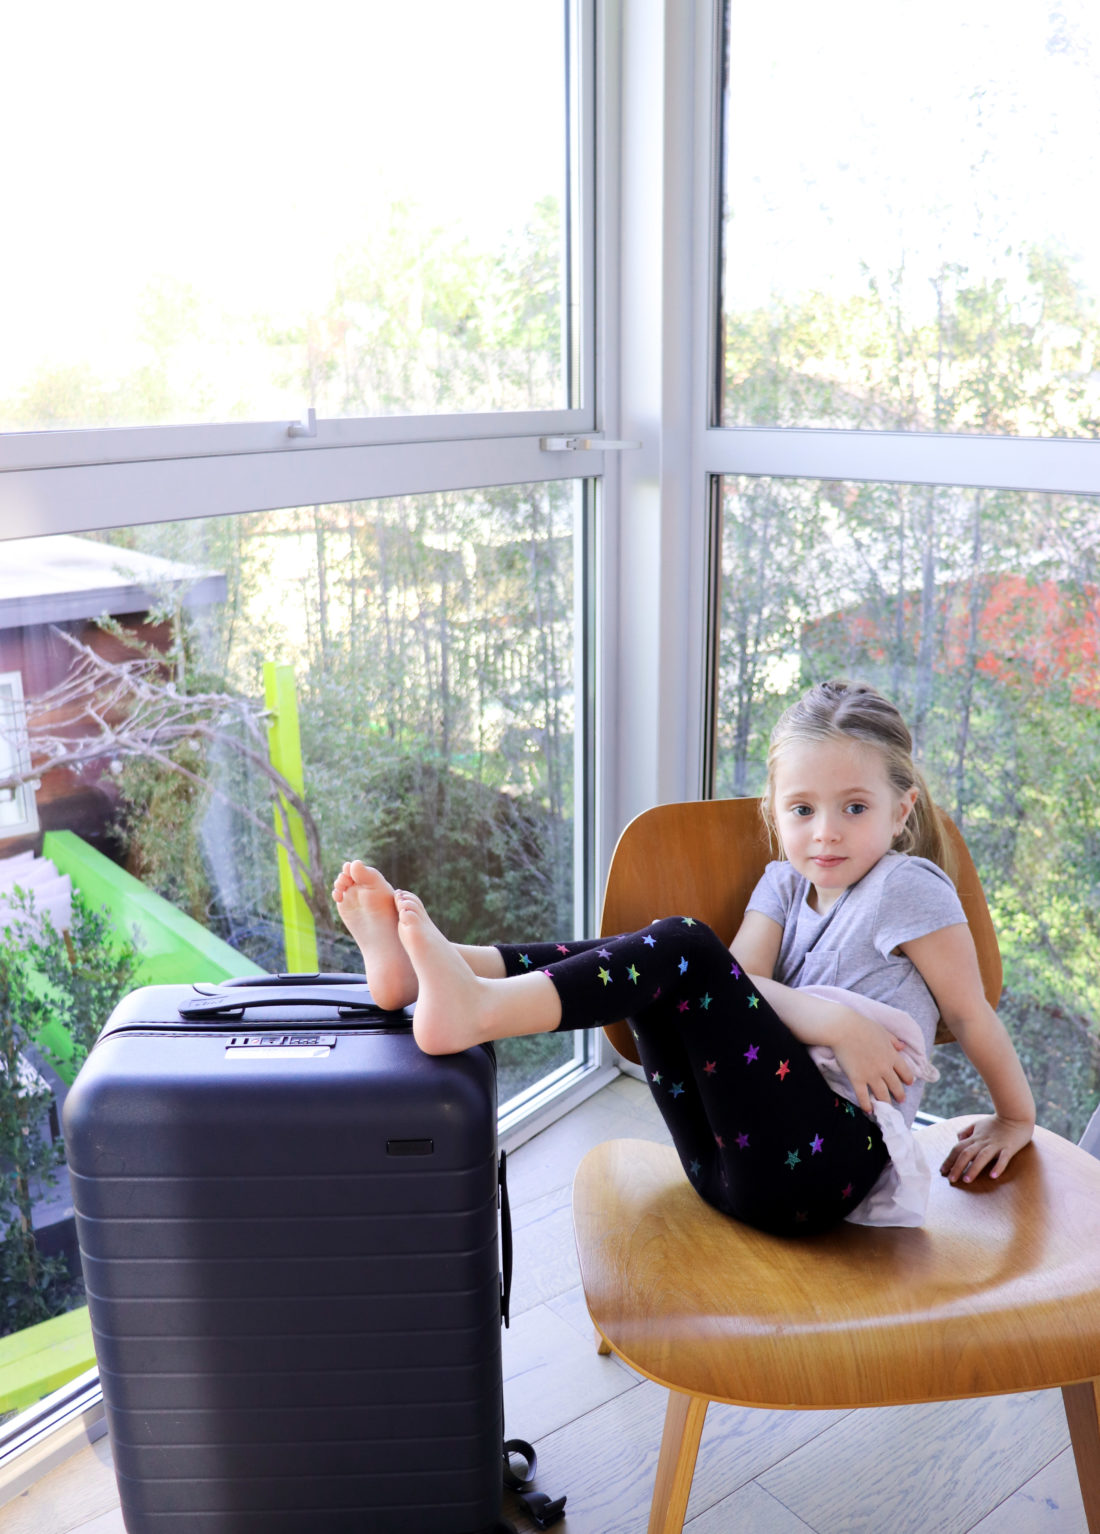 Marlowe Martino sits on a chair and rests her feet on a carry-on suitcase as part of a blog post about the best toddler travel tips